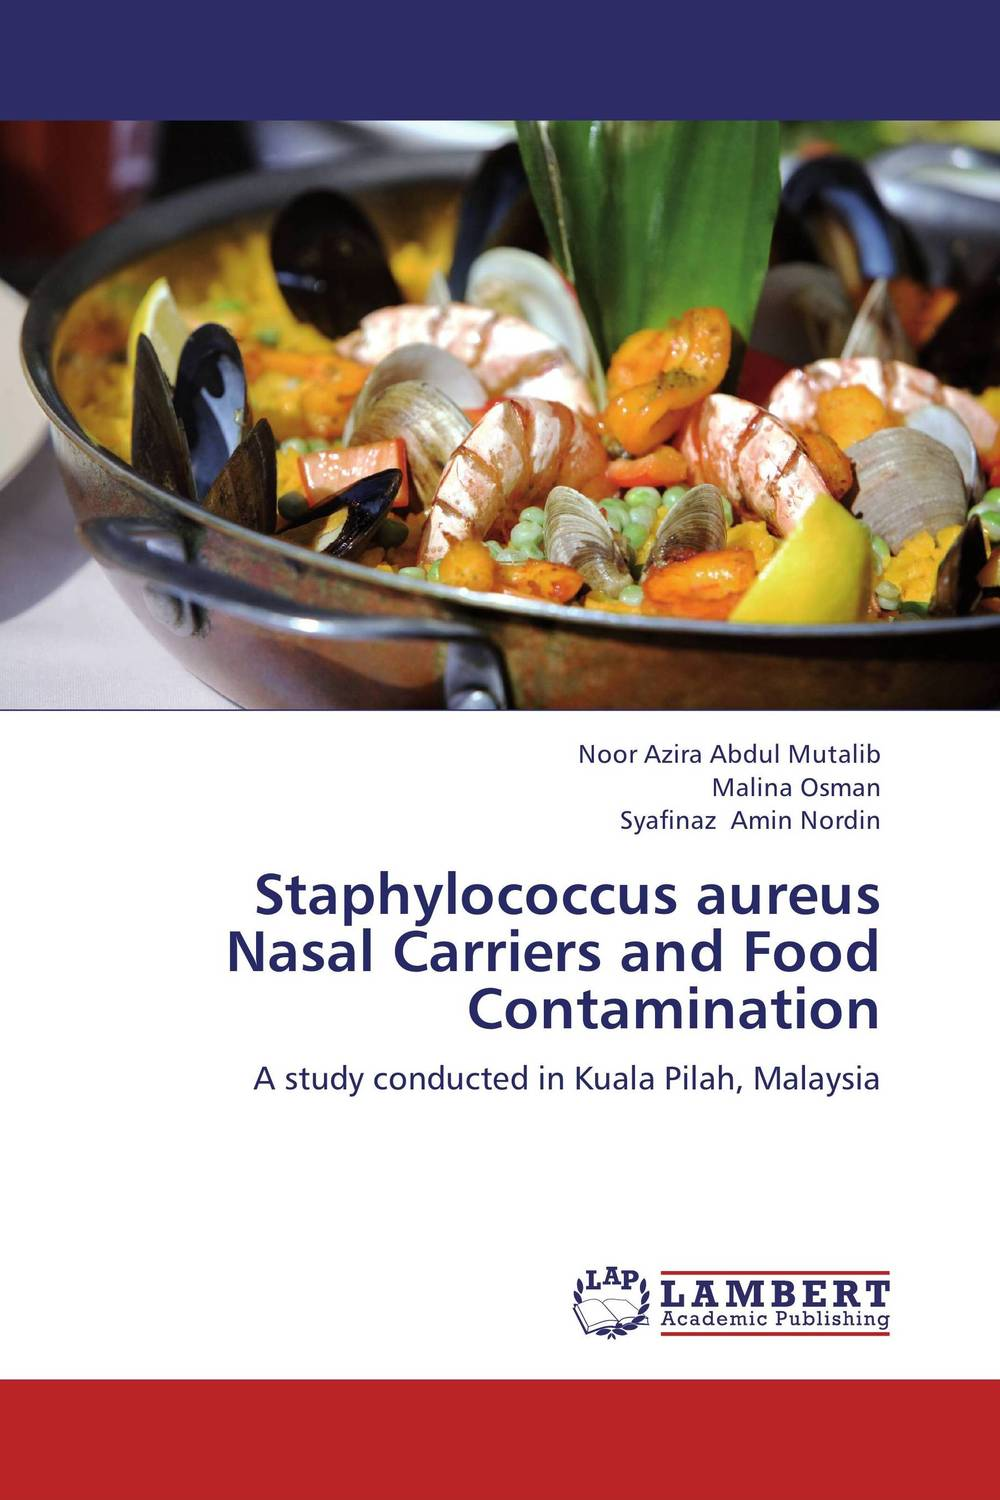 Staphylococcus aureus Nasal Carriers and Food Contamination nidhi gondaliya and sweta patel methicilin resistance staphylococcus aureus skin